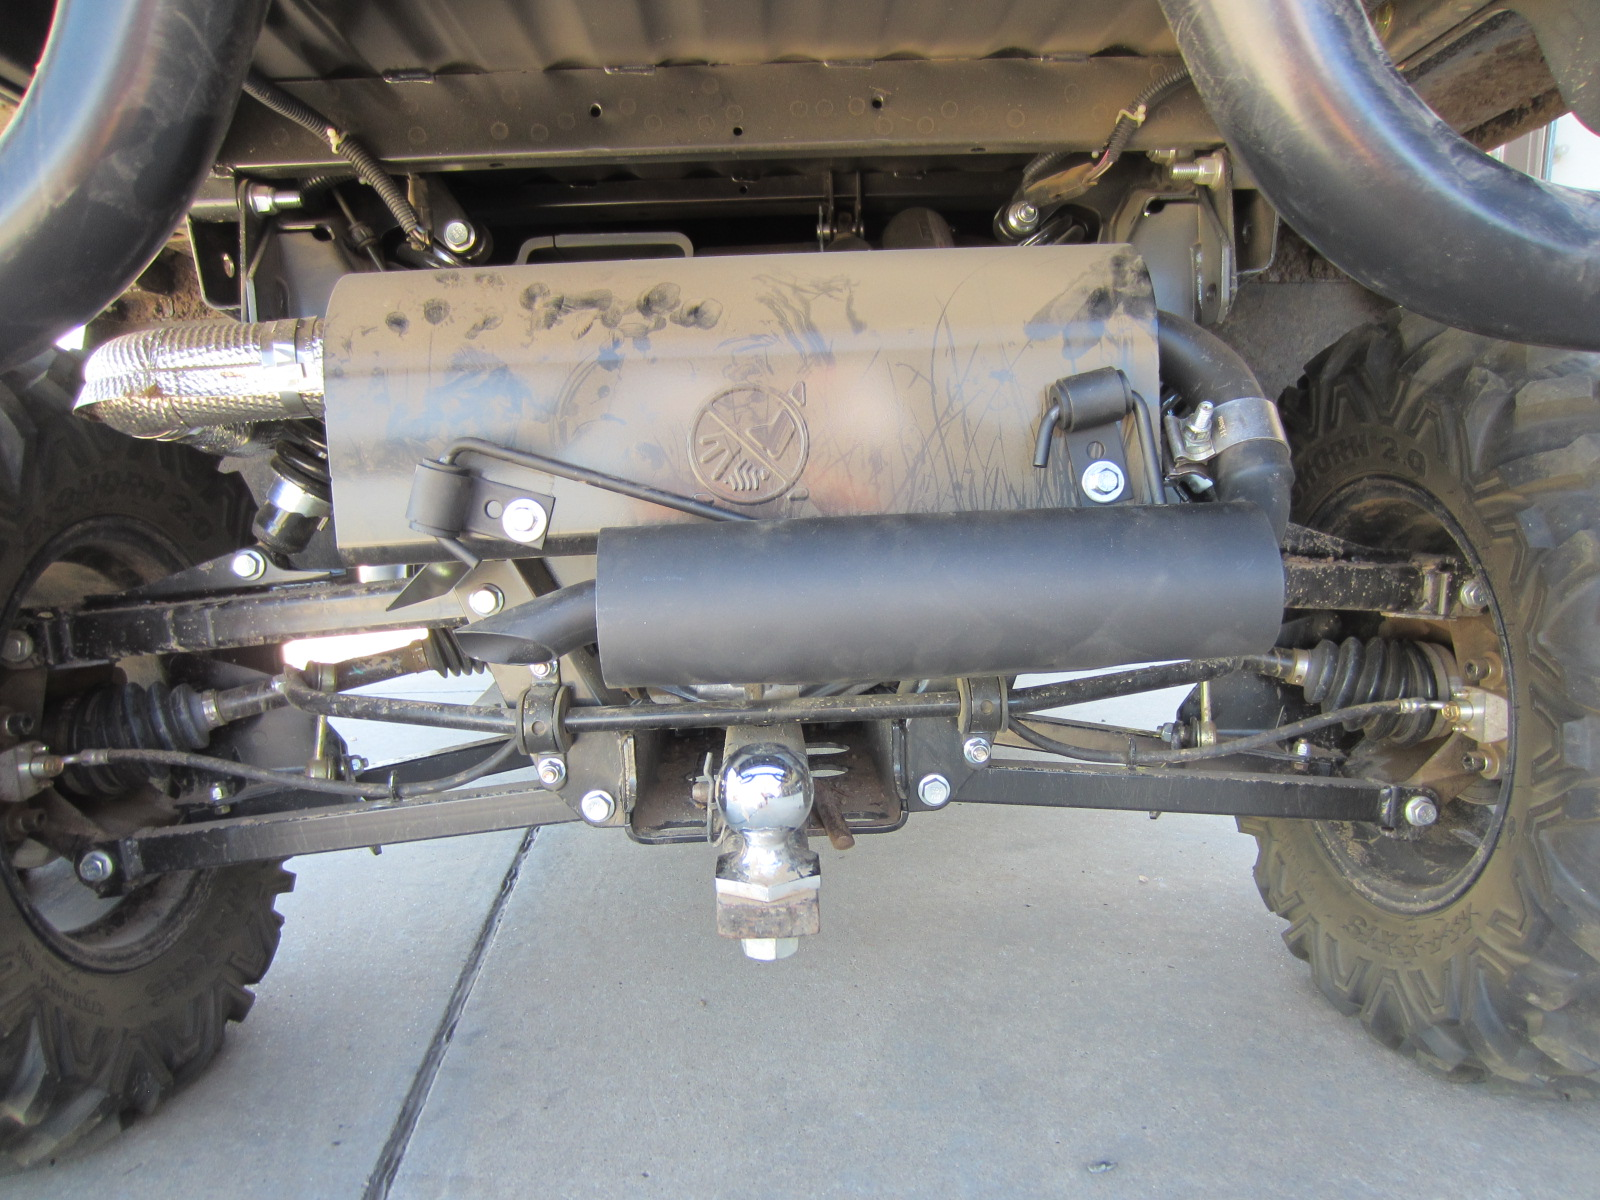 Silent Rider Exhaust Silencer (almost) installed! - John